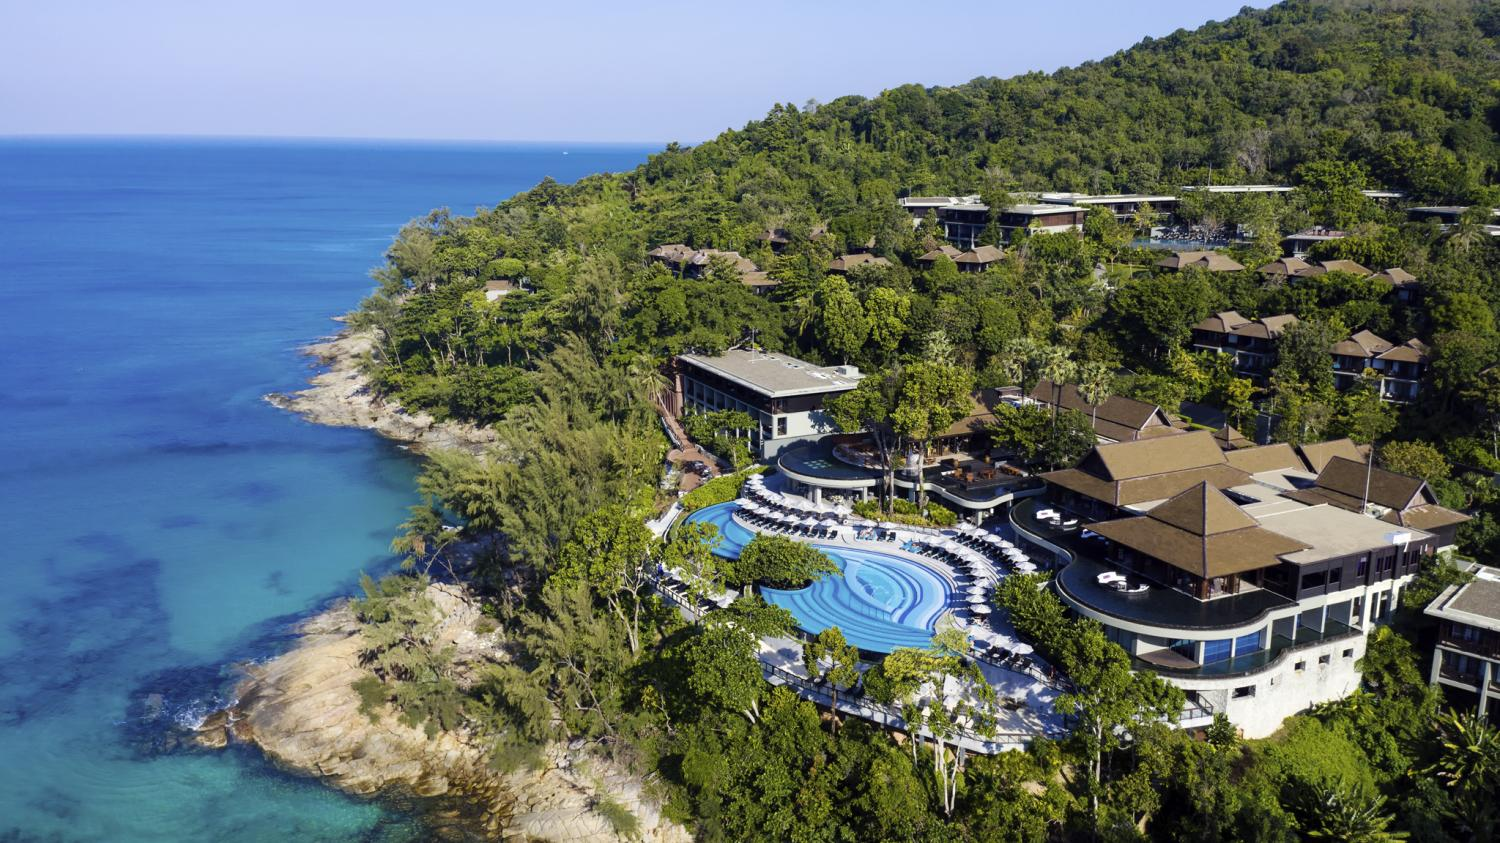 Pullman Phuket Arcadia Naithon Beach. Several hotel chains in Phuket posted higher bookings once the sandbox scheme was confirmed.